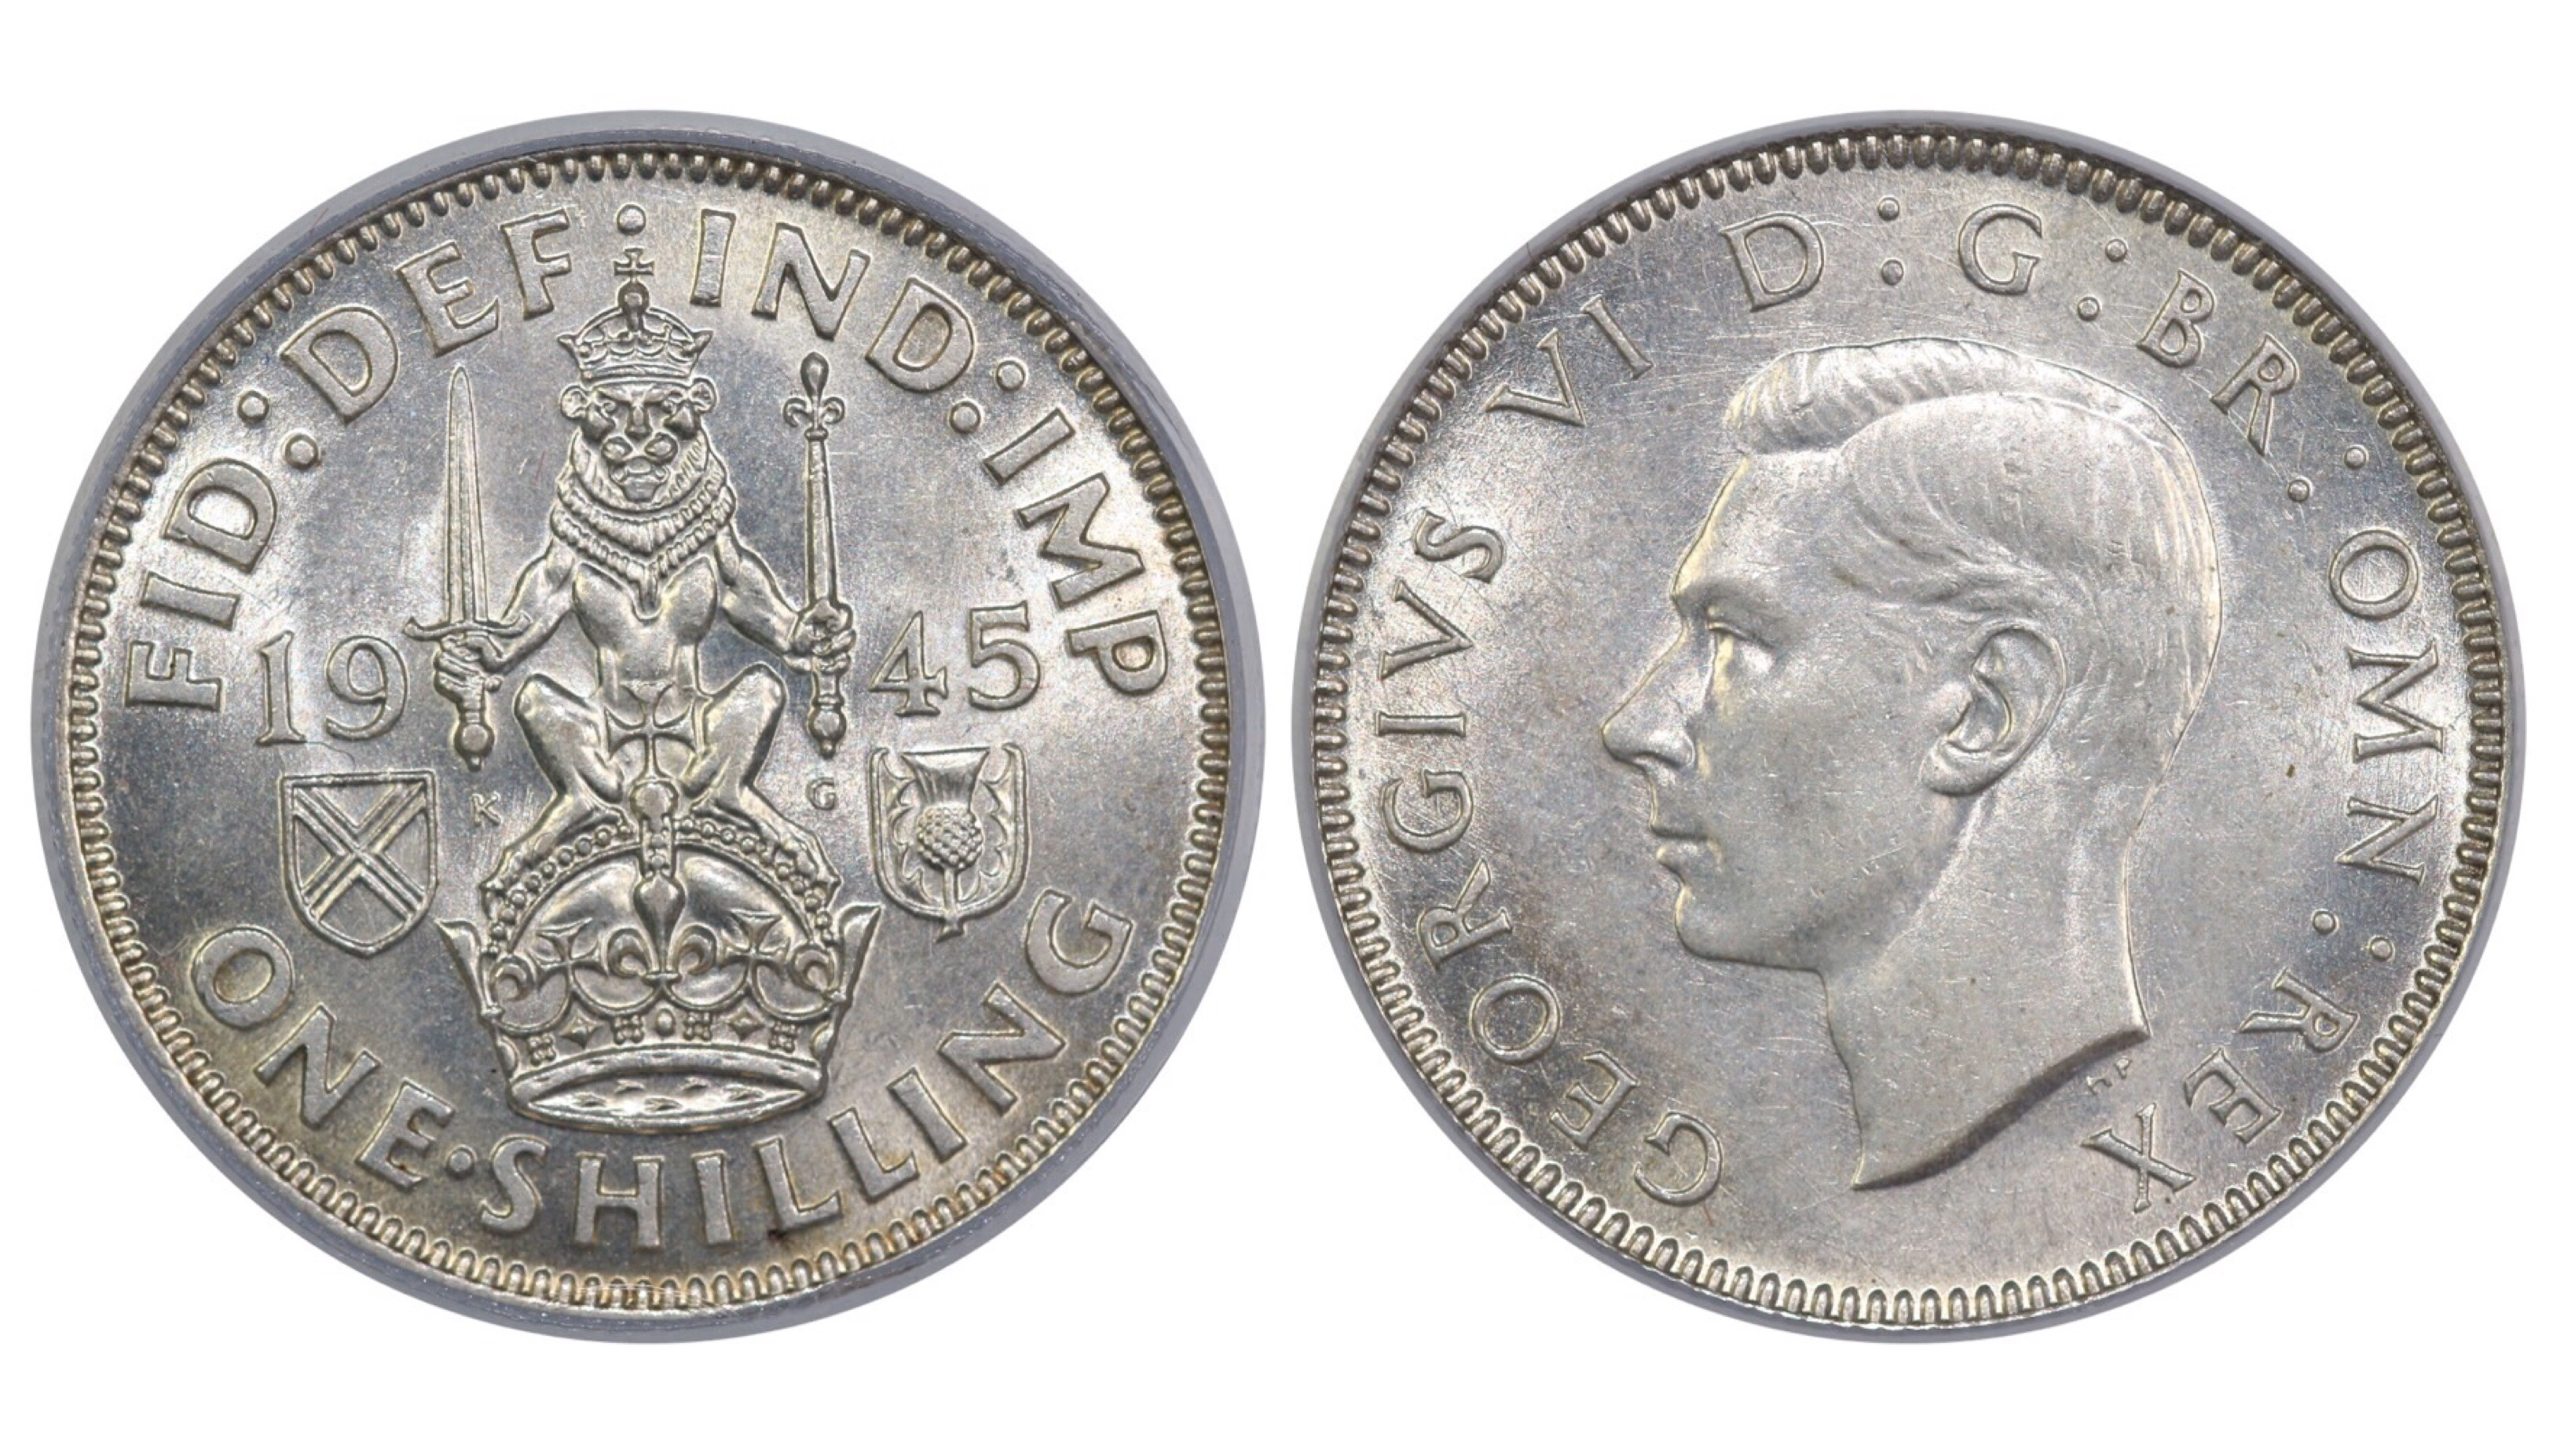 1945 'Scottish' Shilling, CGS 75, ESC 1469, UIN 25674